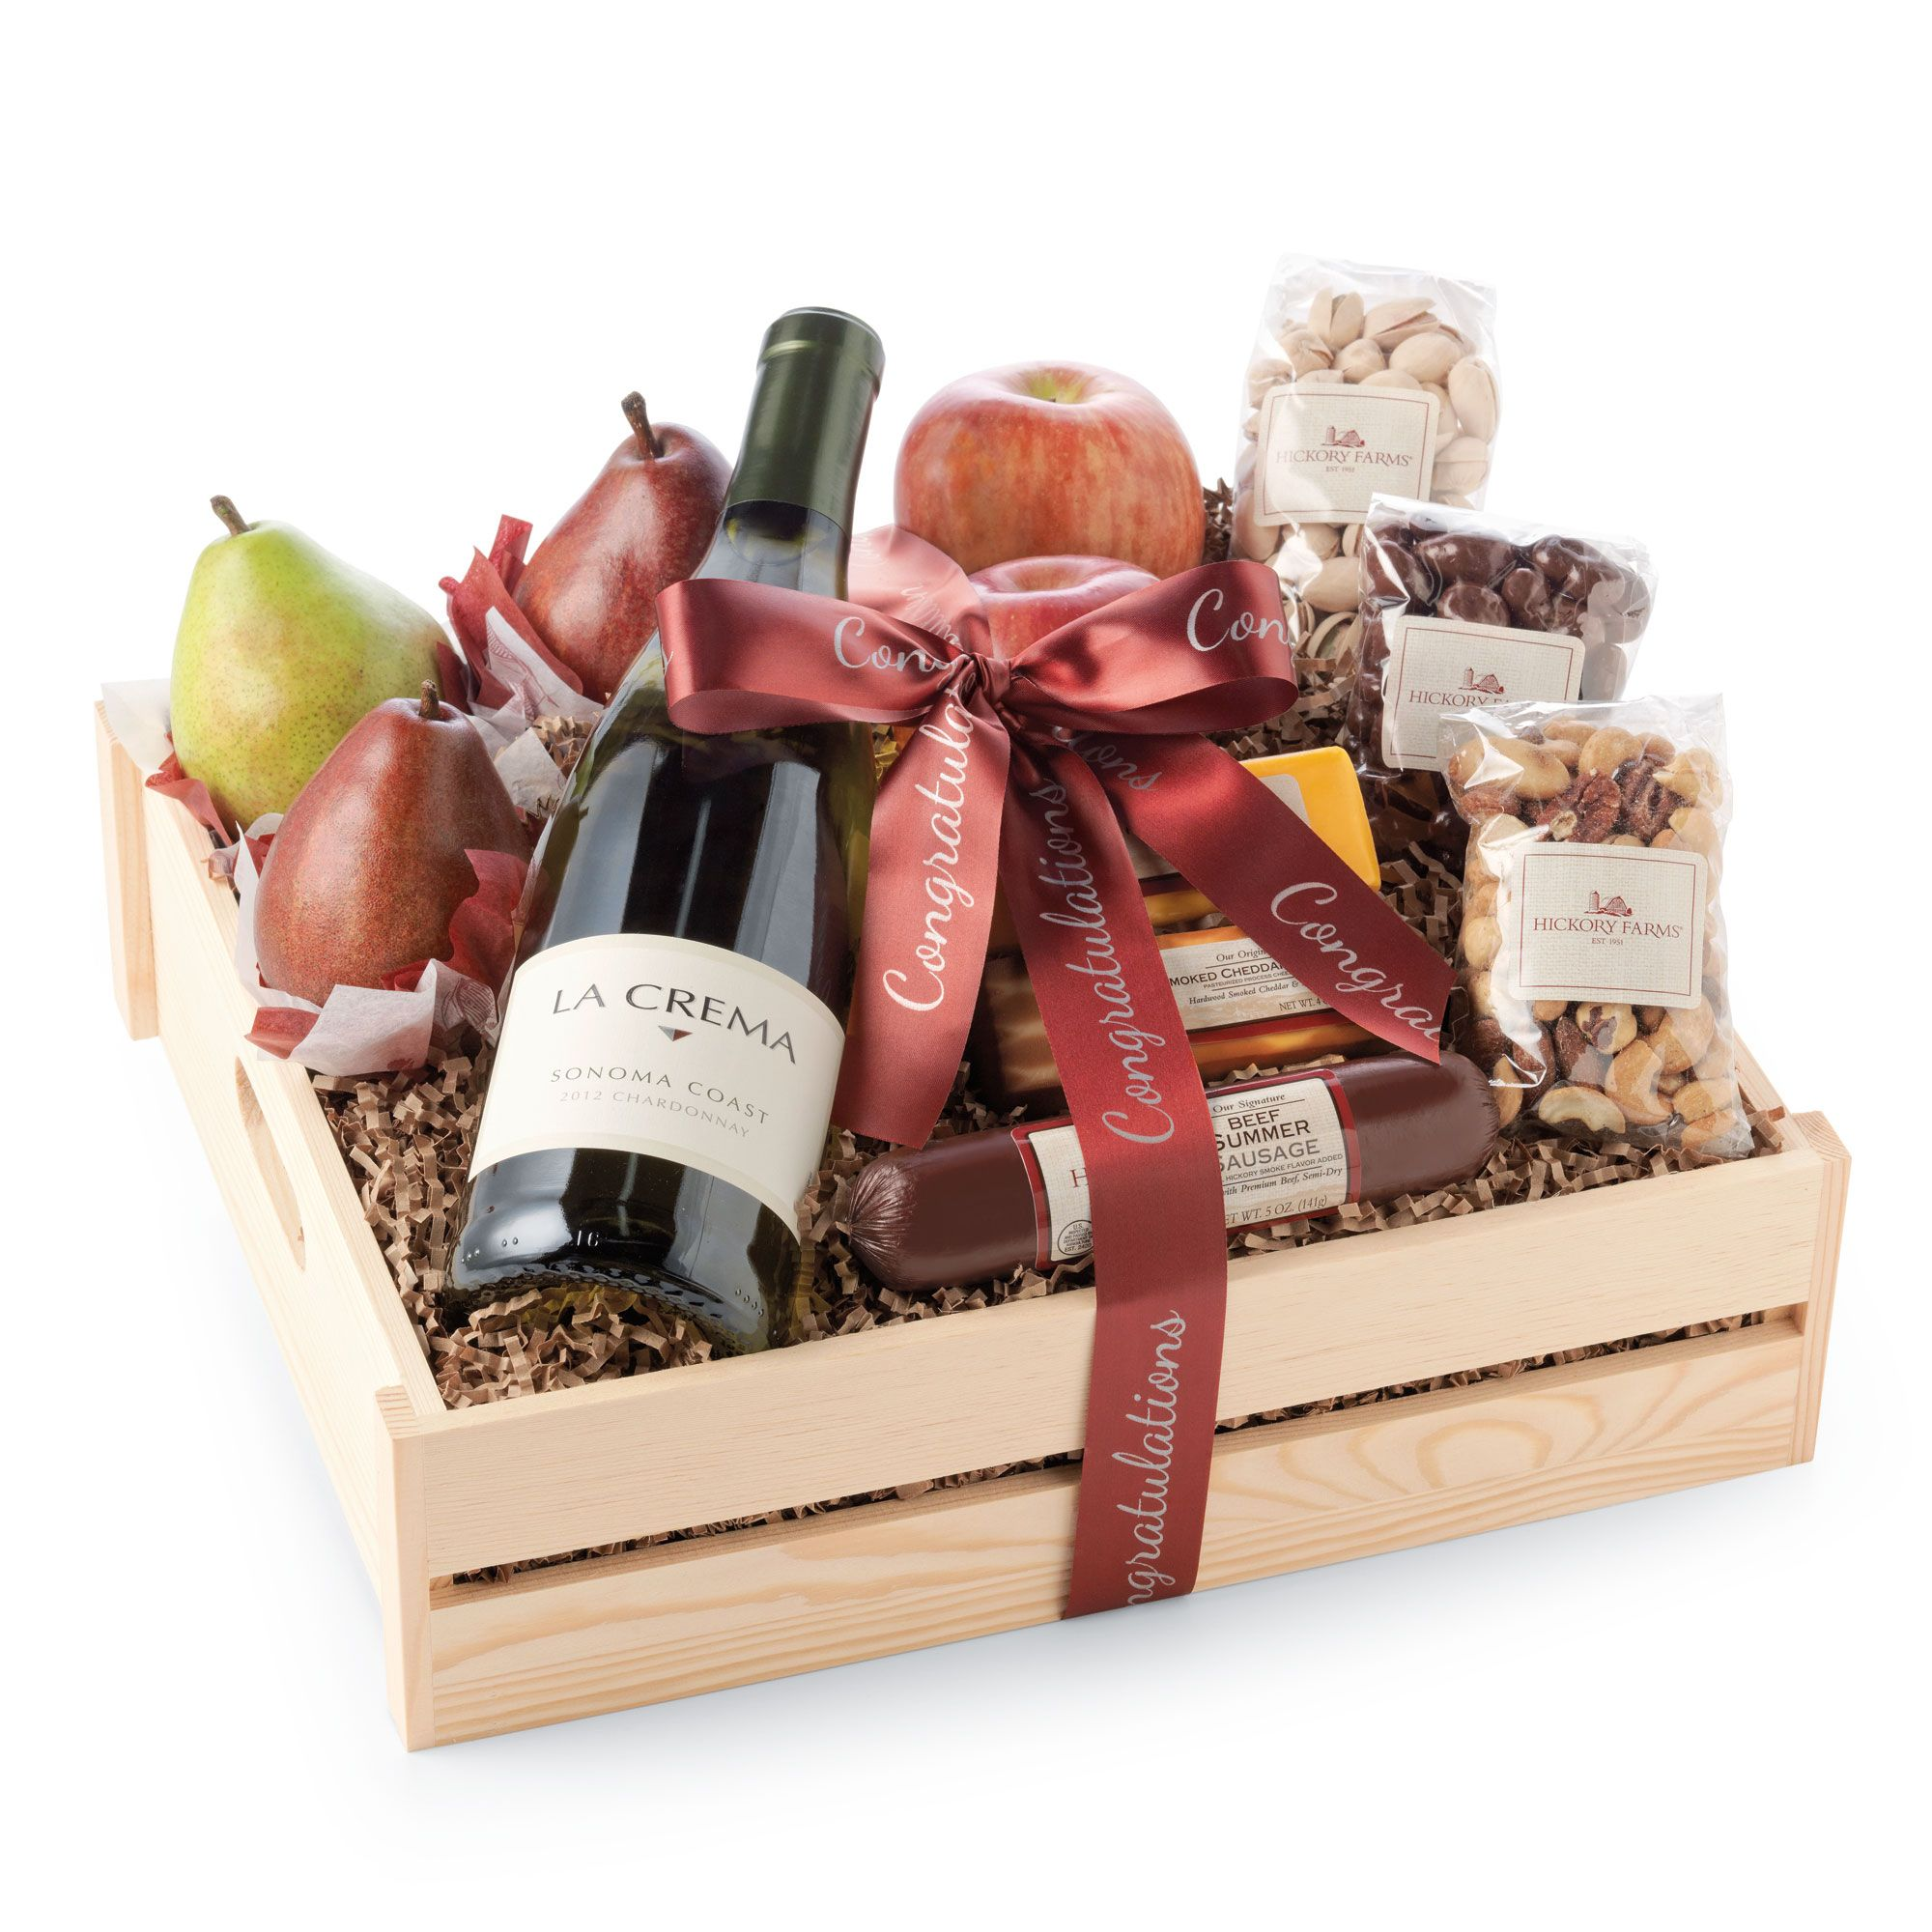 Toast The Traditions Gift Wine Gift Box Ideas Wedding Gift Baskets Best Gift Baskets